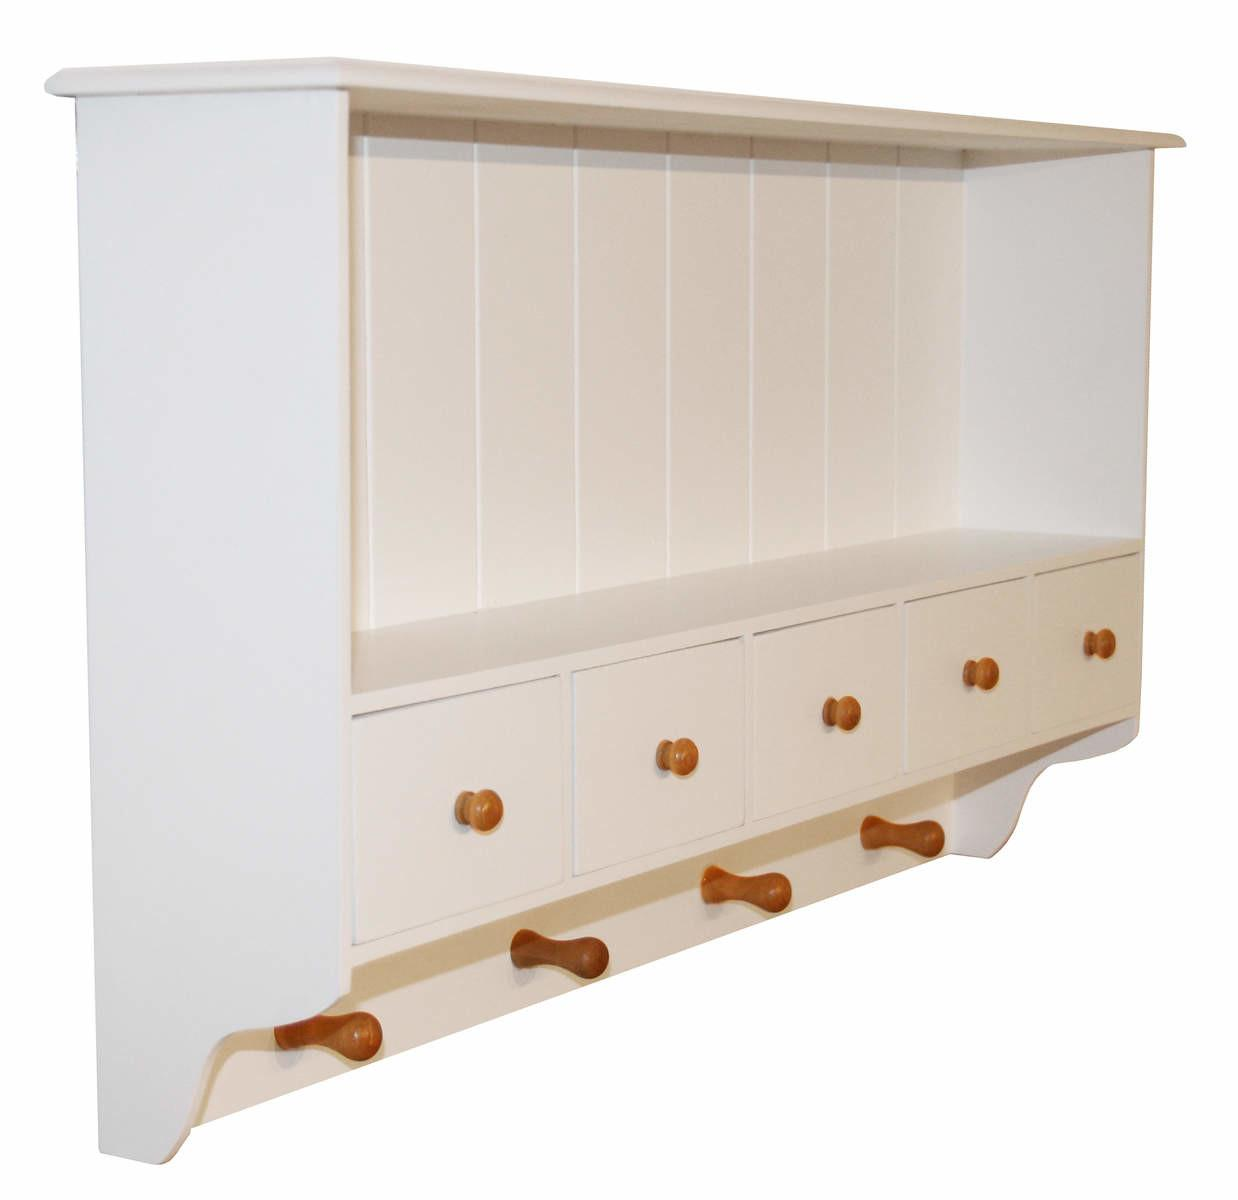 White French Country Kitchen Top Wall Shelf Display Cupboard